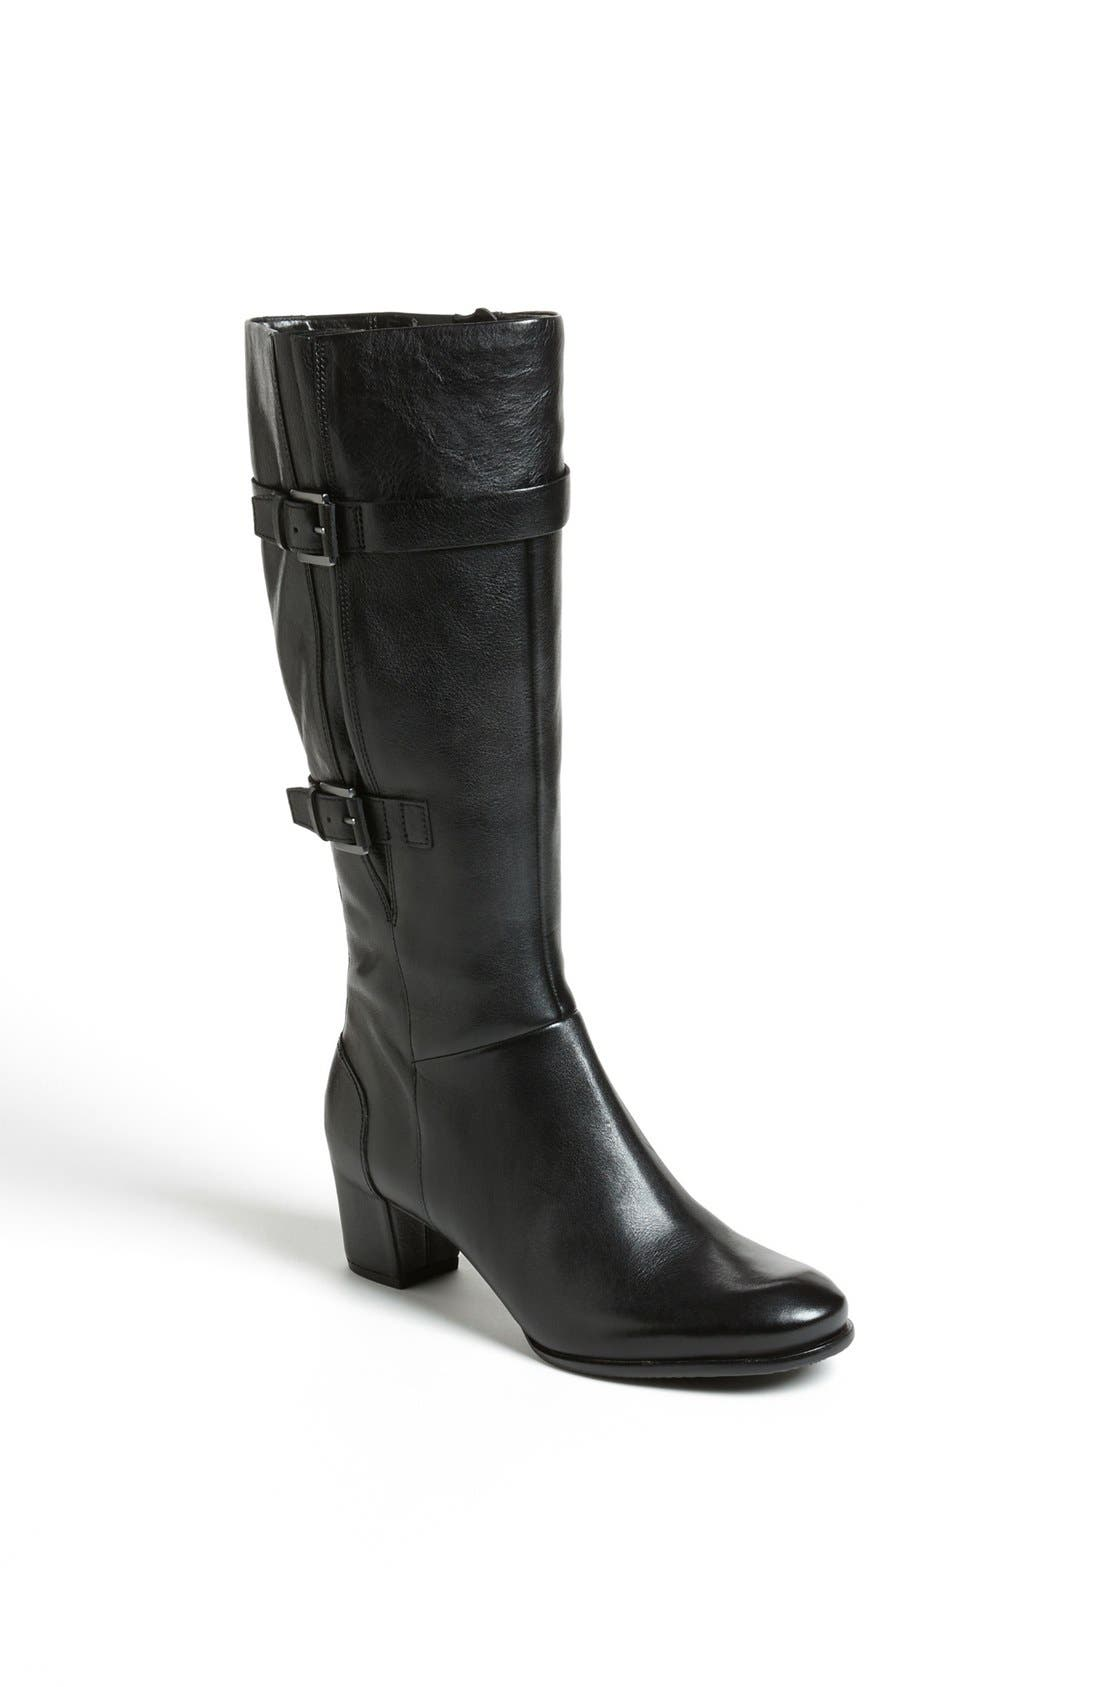 Main Image - ECCO 'Pailin' Boot (Wide Calf)